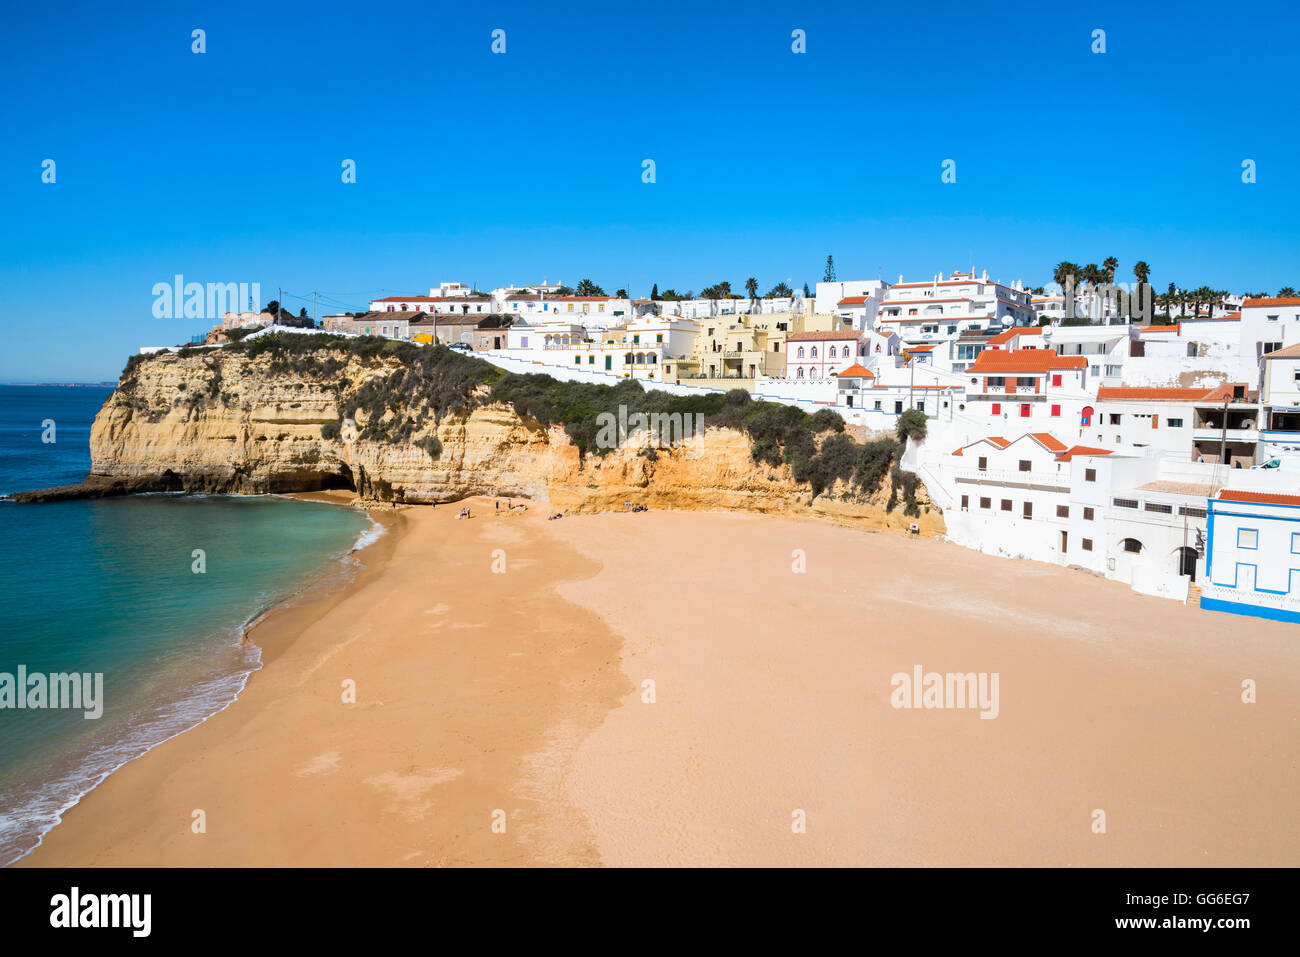 Carvoeiro and Beach, Algarve, Portugal, Europe - Stock Image